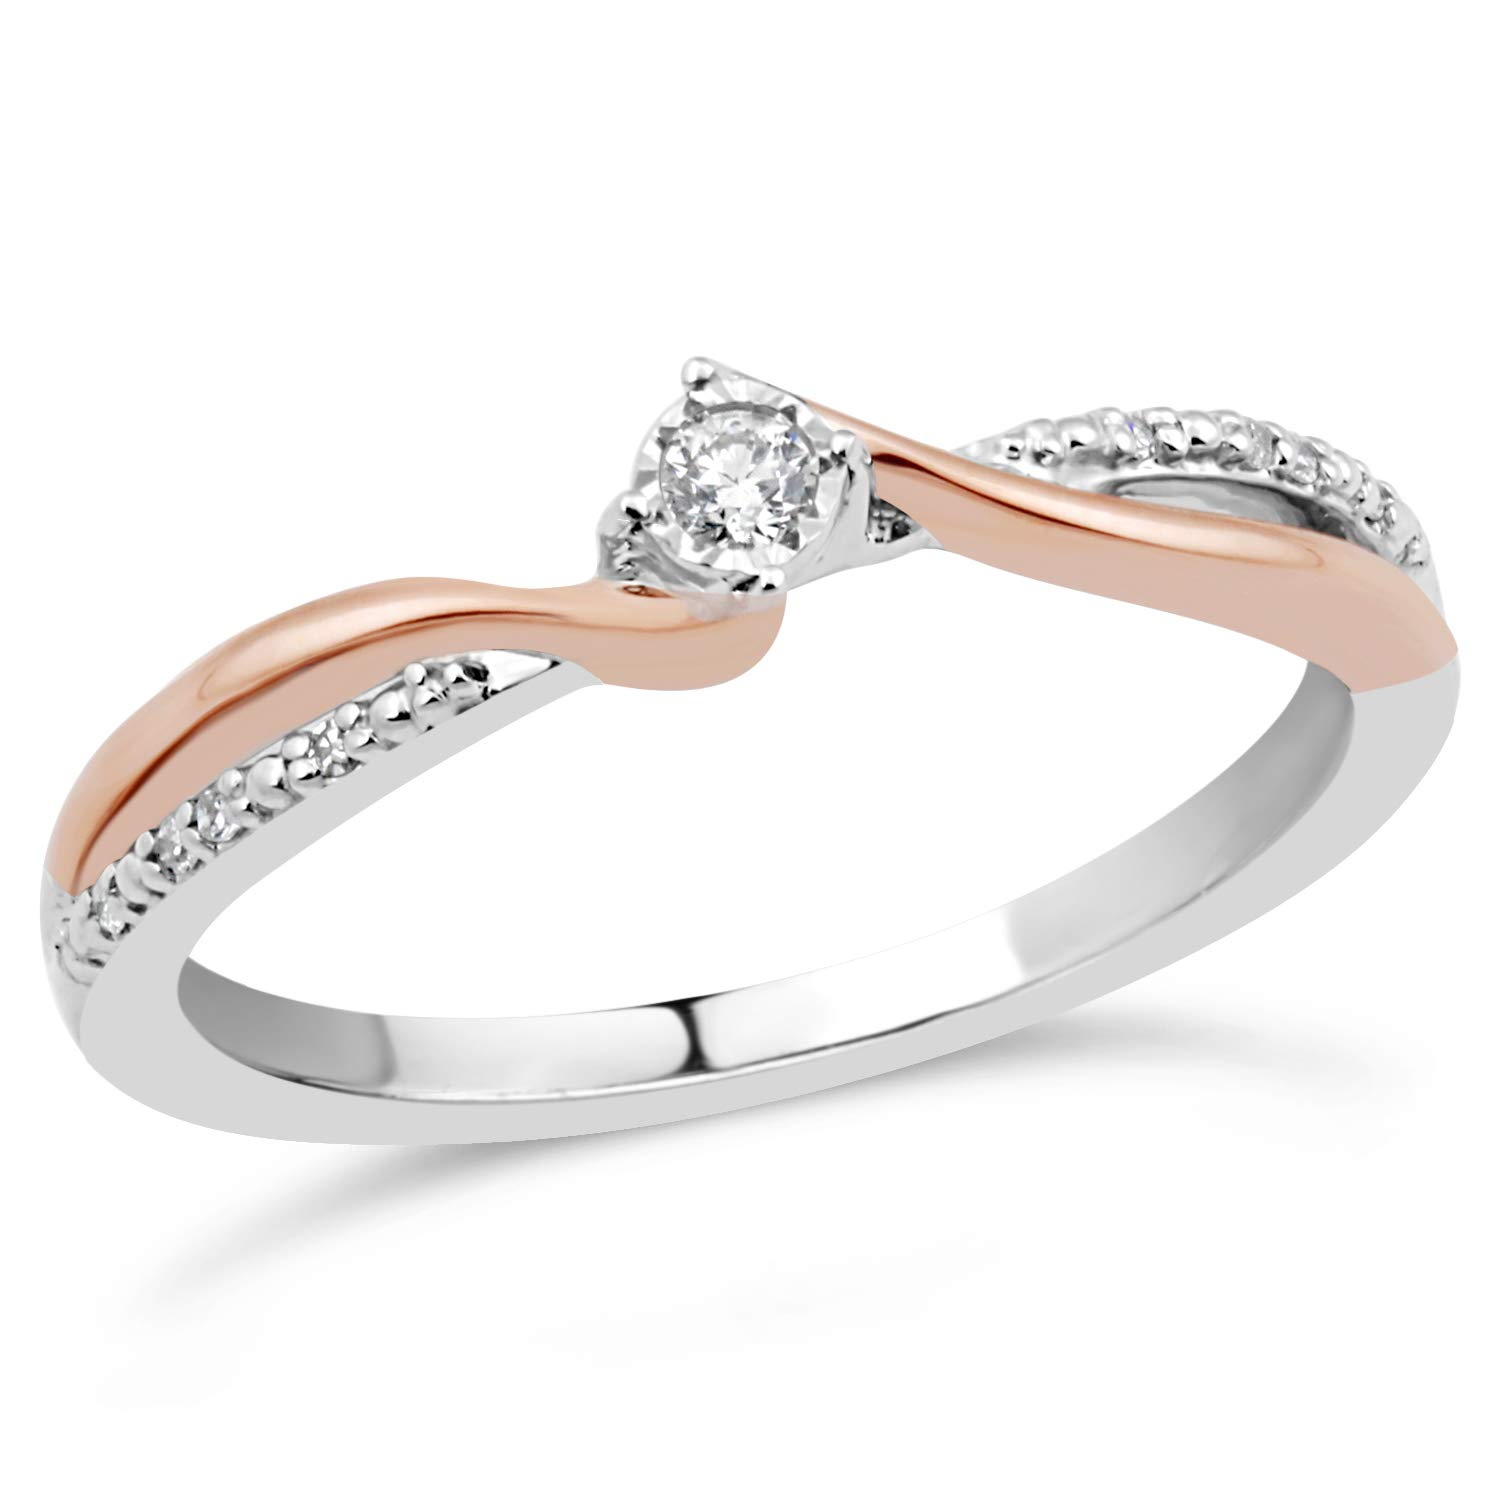 Diamond Promise Ring in Sterling Silver and 10k Rose Gold 1/10 cttw-Size 7 by Diamond Classic Jewelry